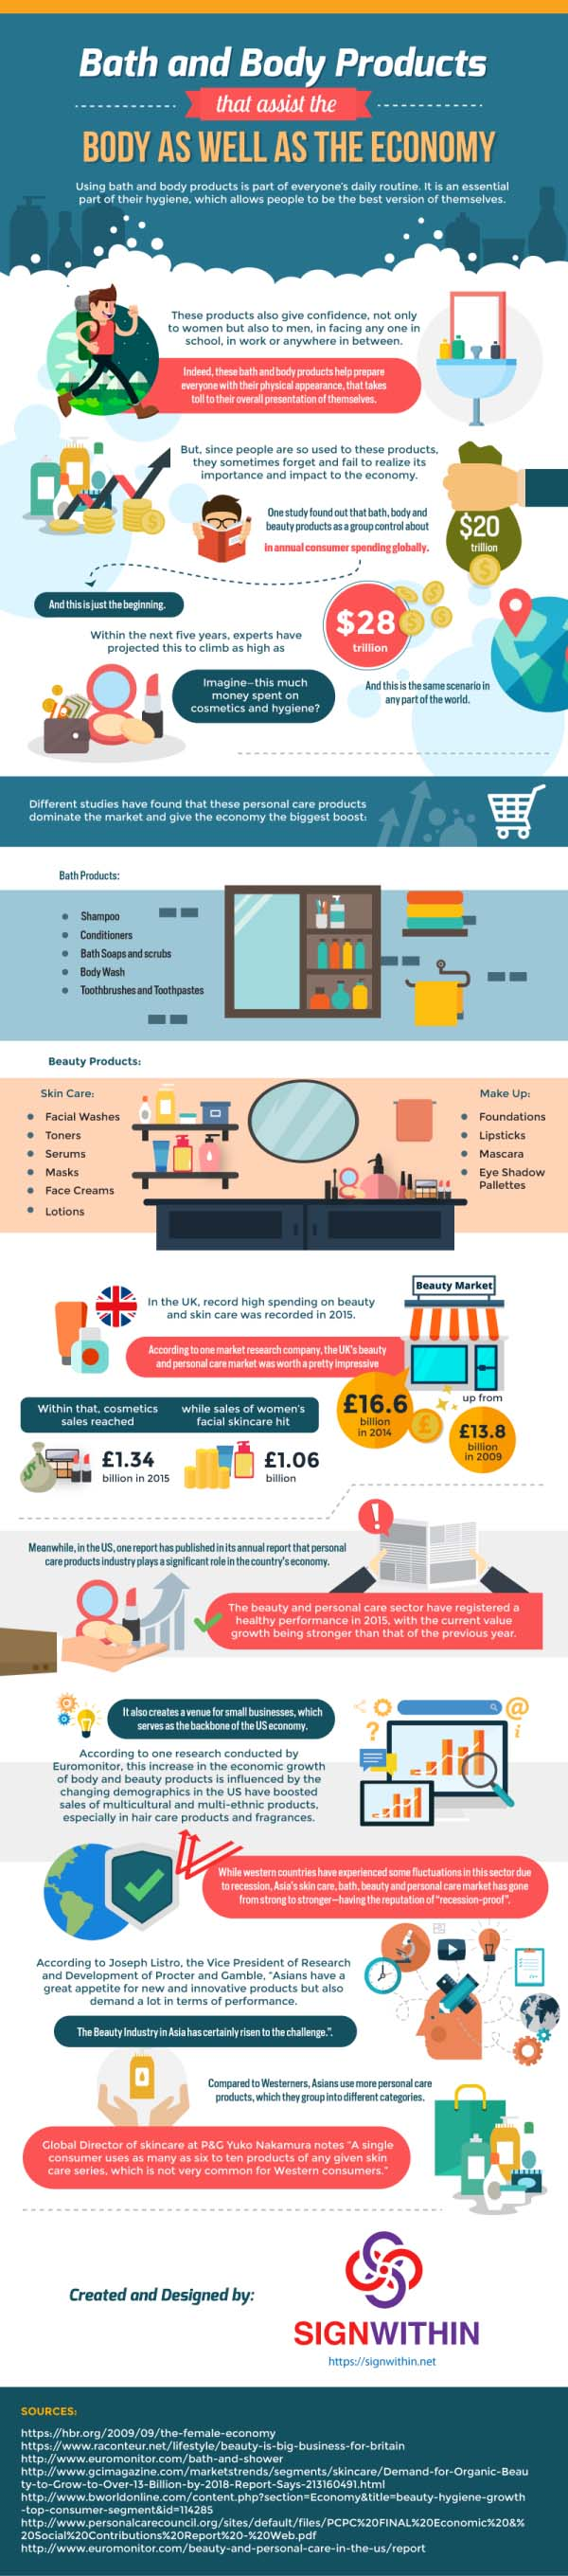 Bath and Body Products that Assist the Body as well as the Economy (Infographic) 1